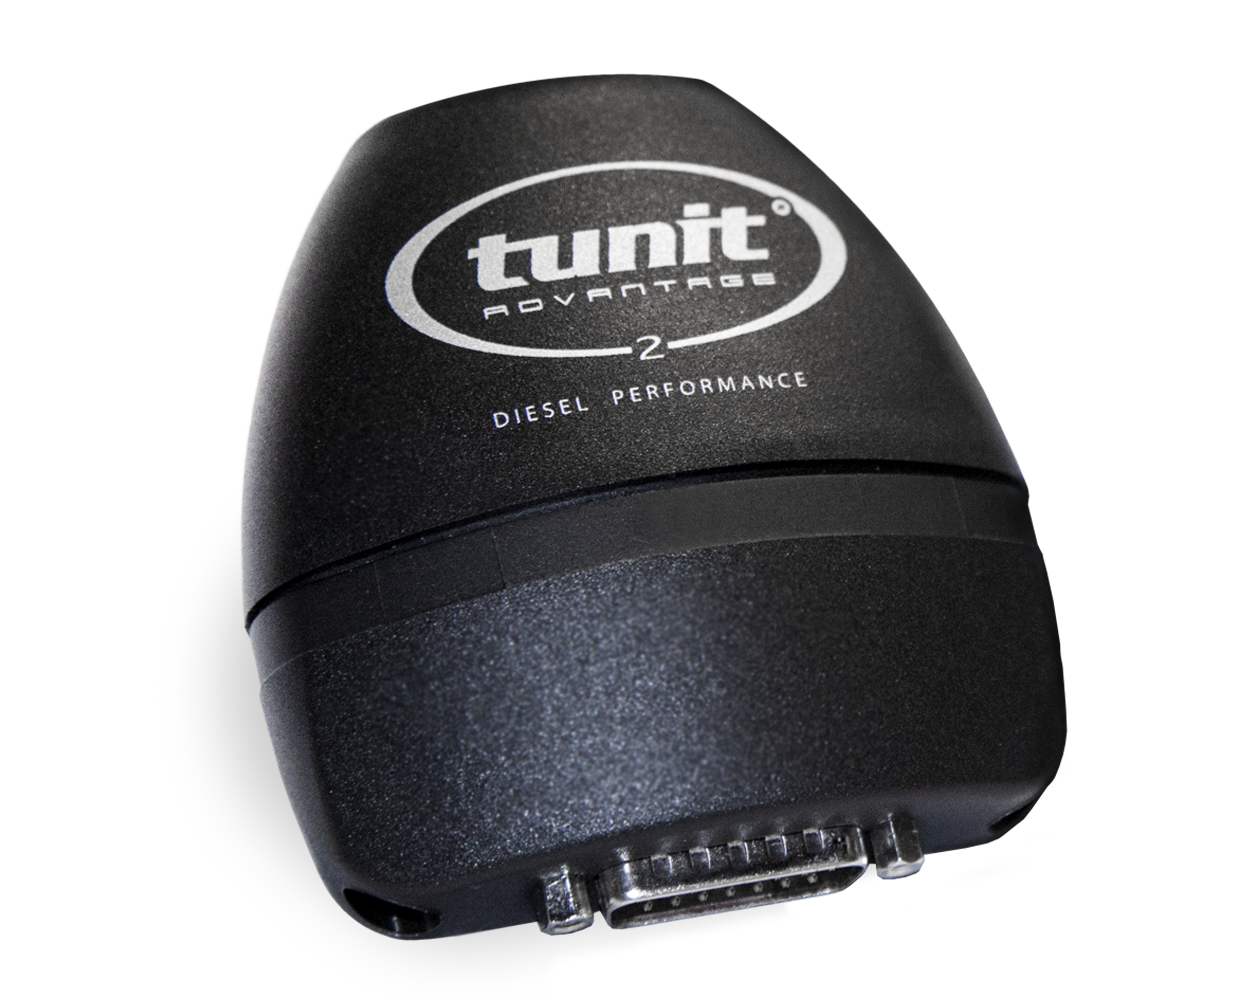 Tunit Advantage